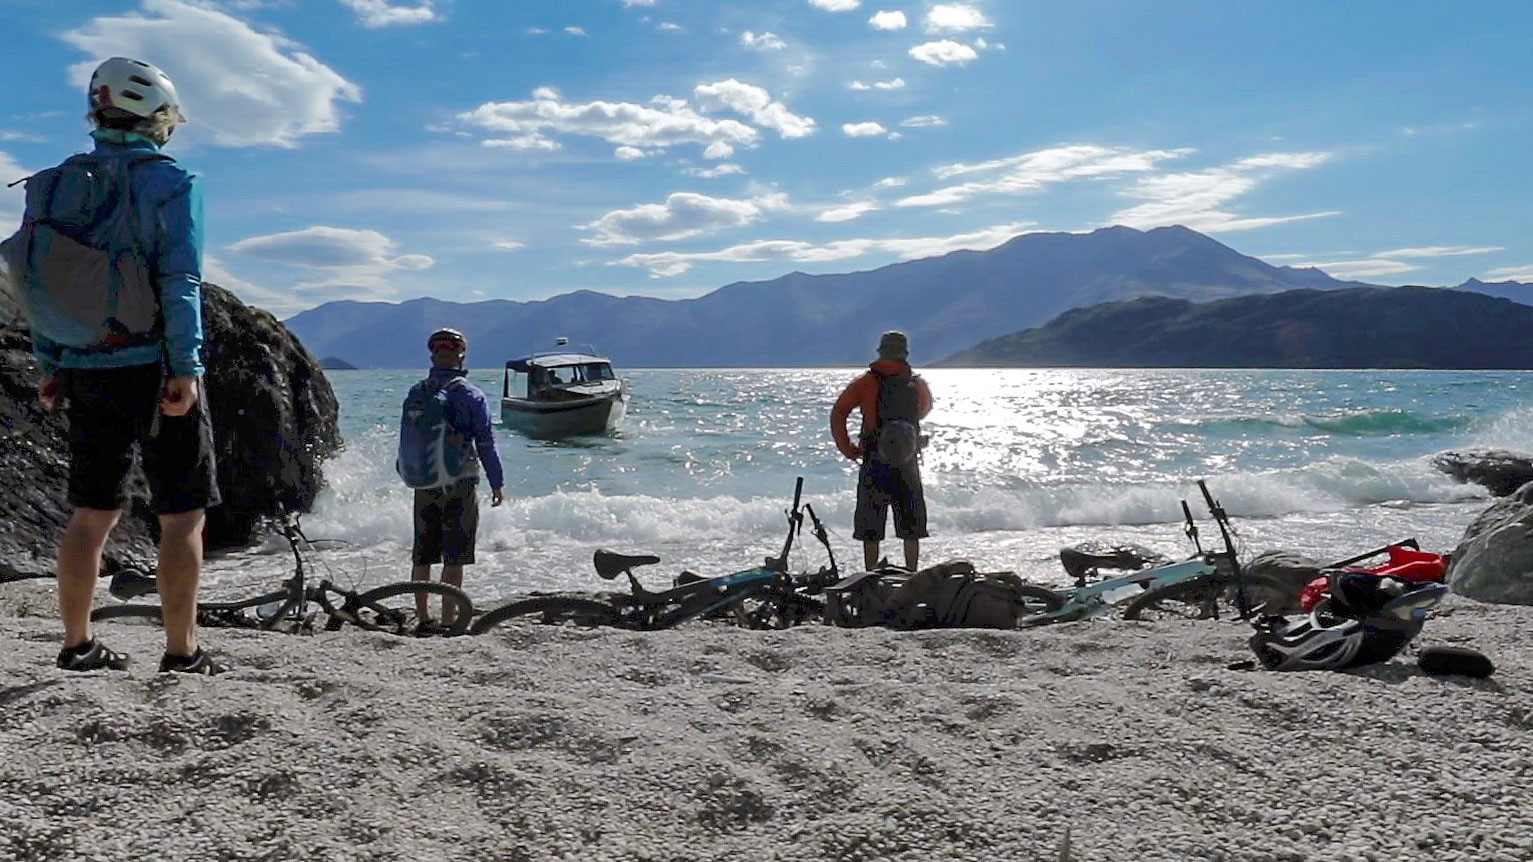 Bike + Boat Tour | Discover Wanaka | Guided Tours